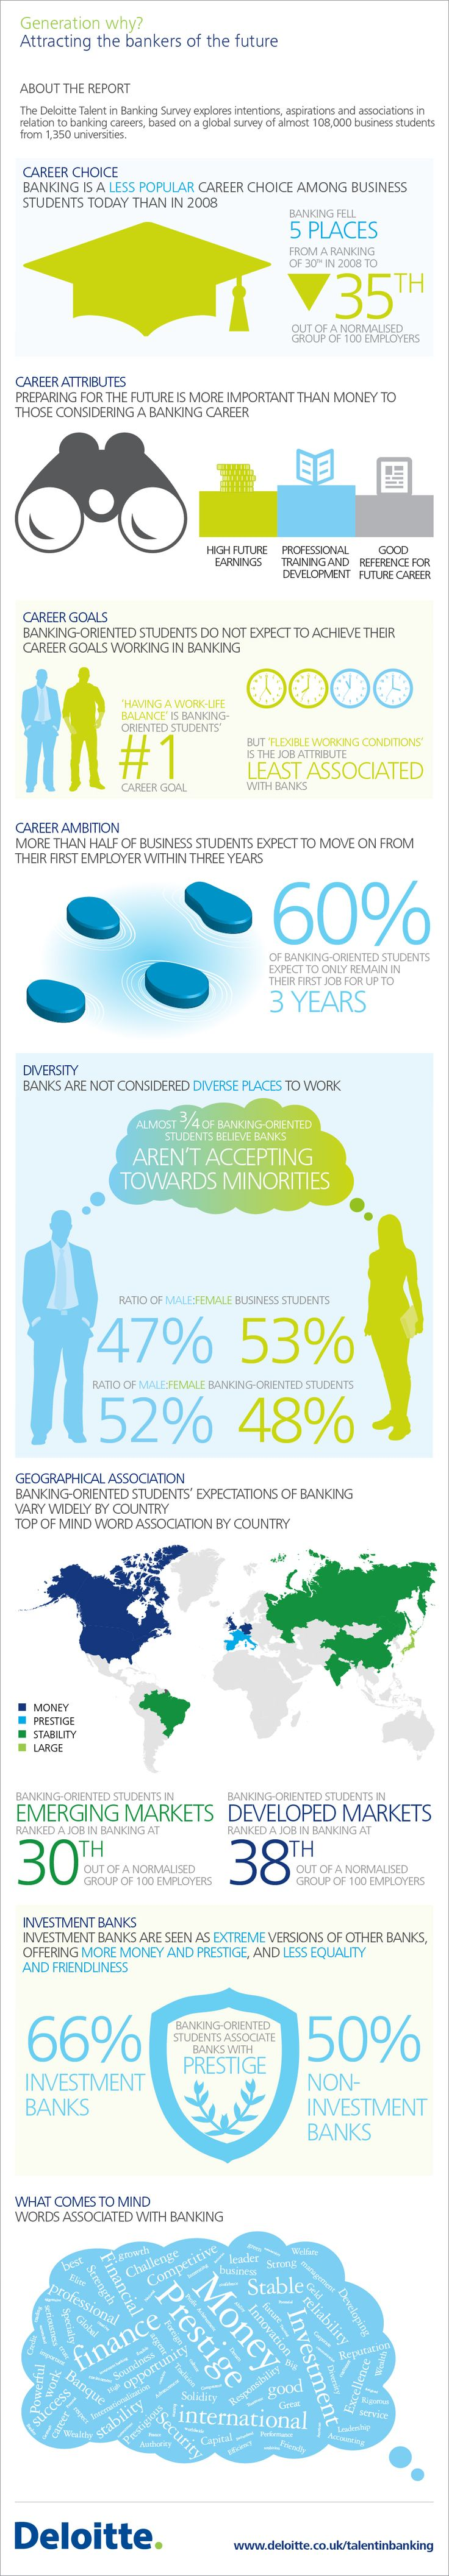 Talent in Banking Infographic - Talent in Banking   Financial Services   Deloitte UK